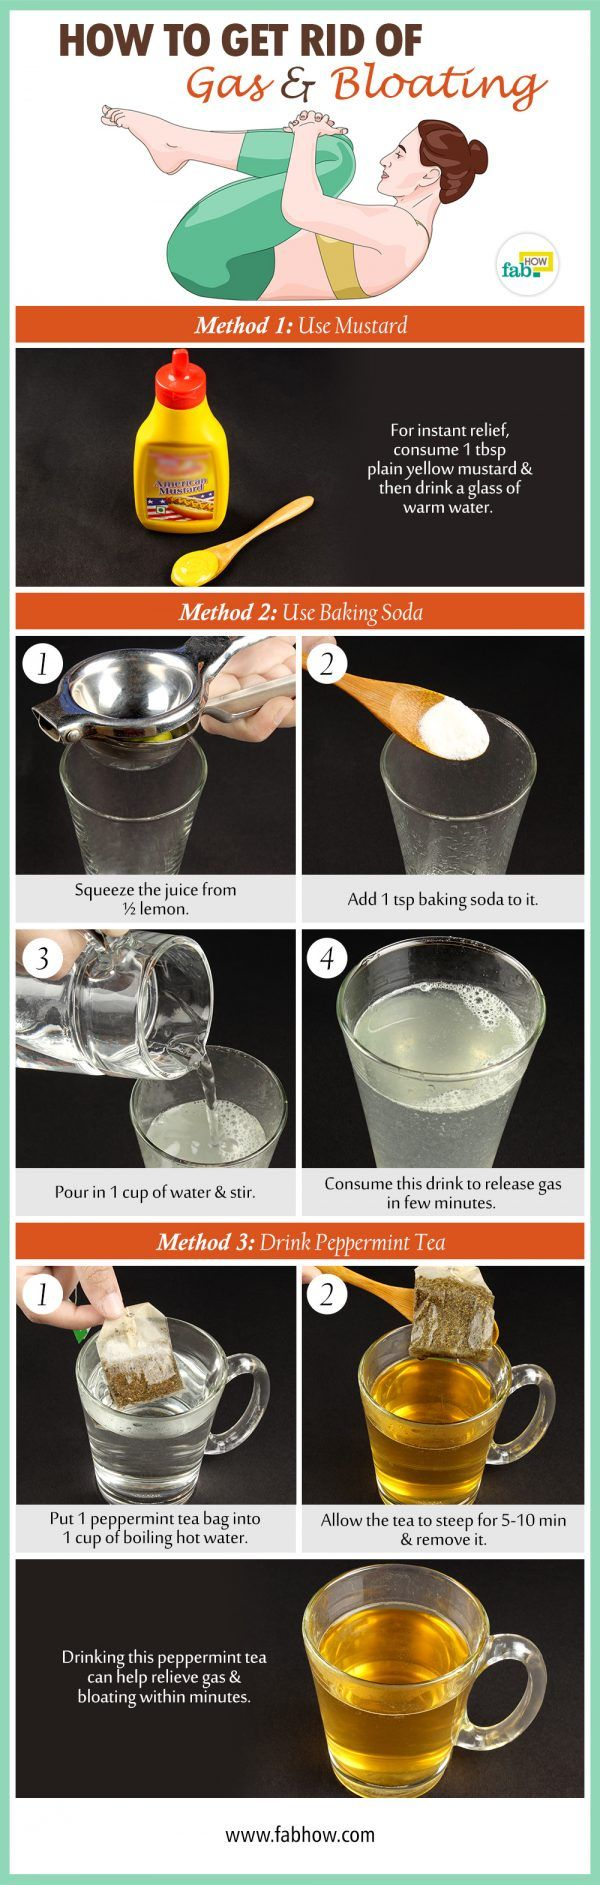 How to Get Rid of Gas and Bloating in Just A Few Minutes this Mustard and Baking Soda Home Remedies